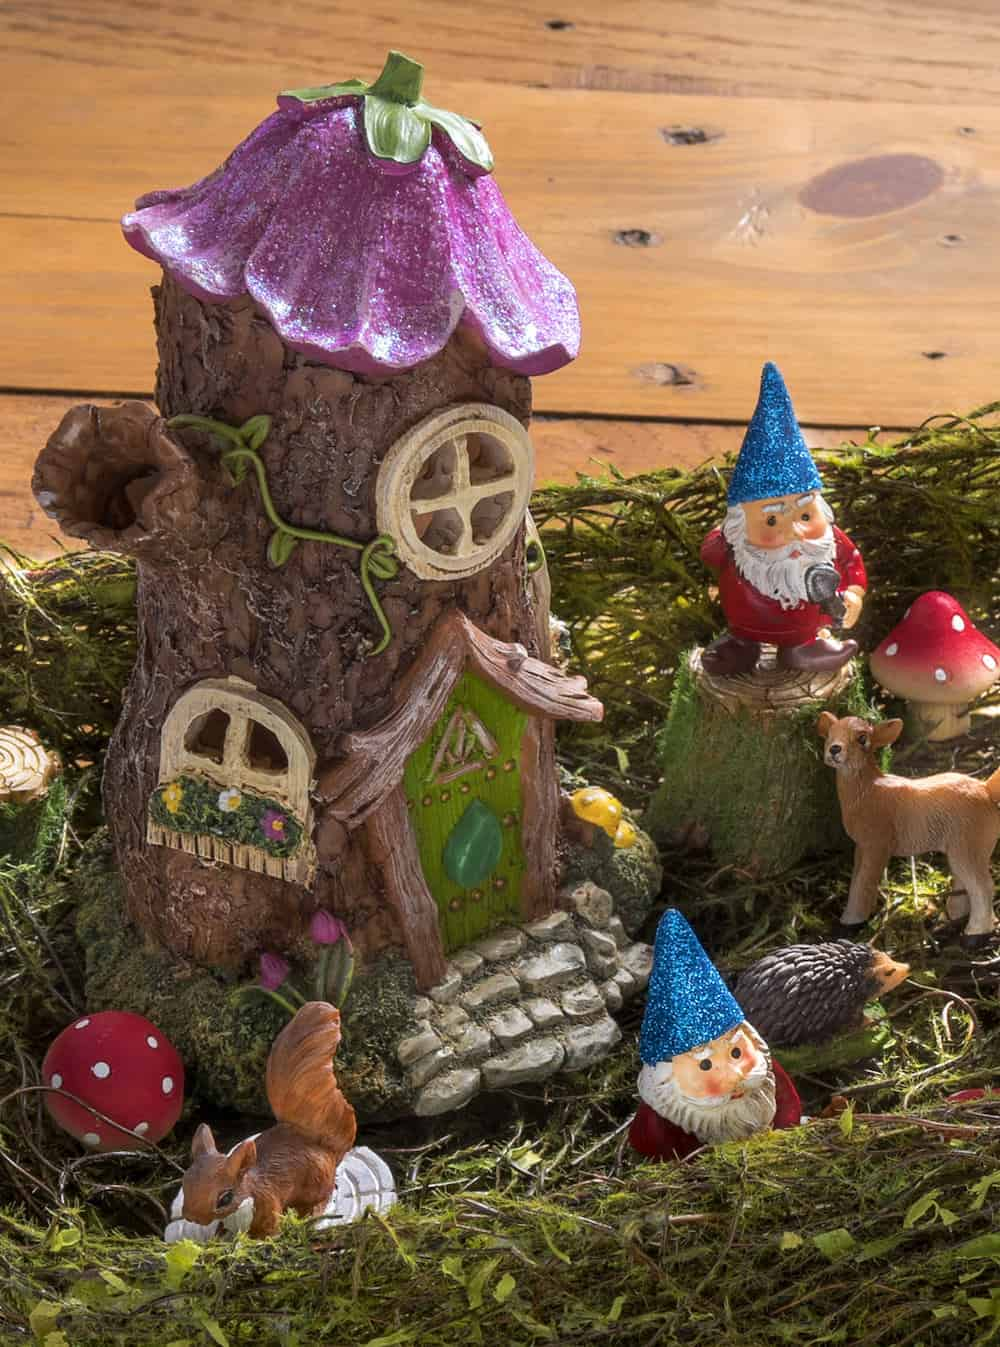 Make a Magical Desktop Fairy Garden - Mod Podge Rocks